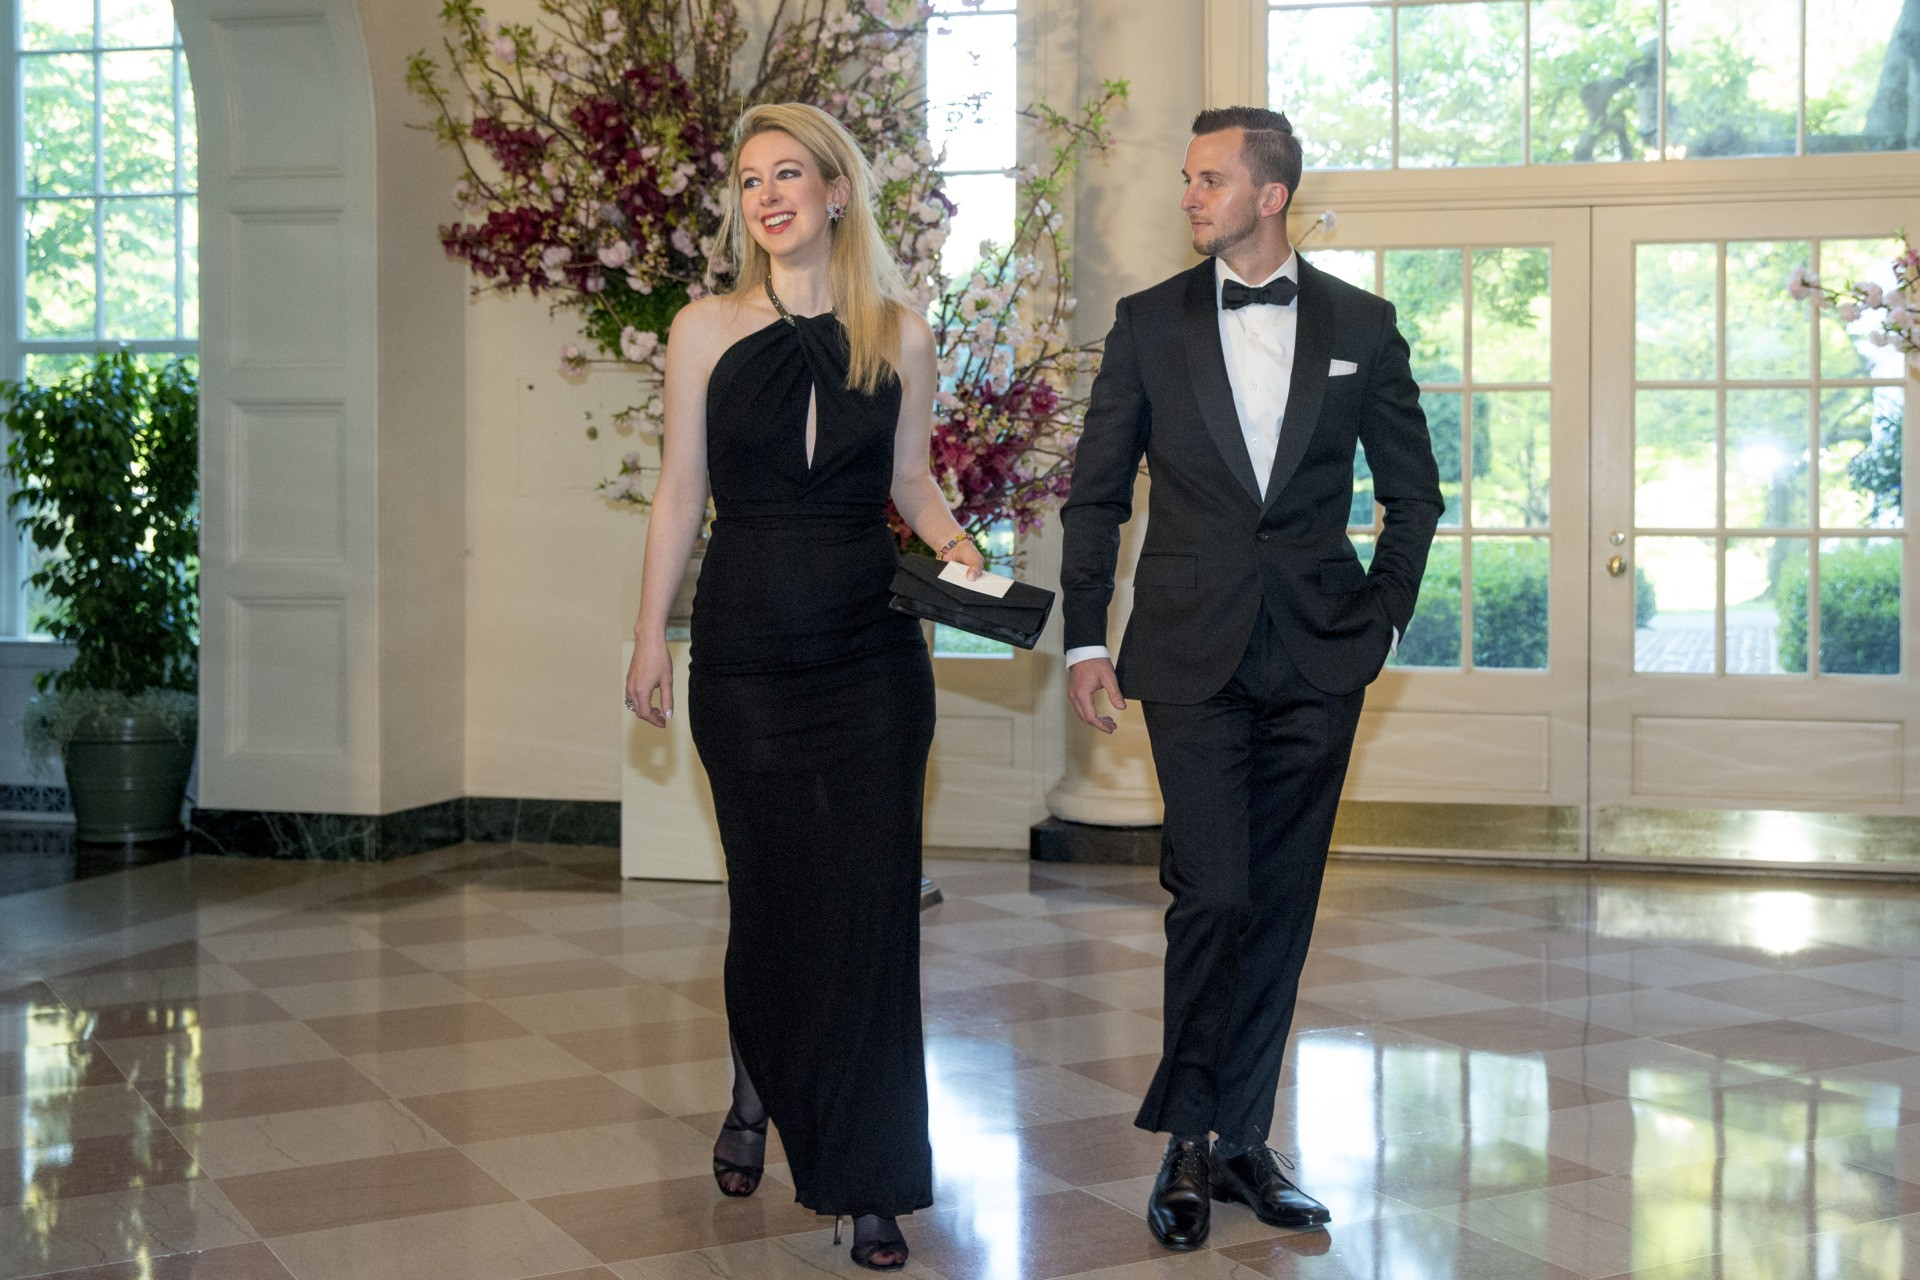 Theranos Inc. Founder and CEO Elizabeth Holmes, left, and Christian Holmes arrive for a state dinner for Japanese Prime Minister Shinzo Abe, Tuesday, April 28, 2015, at the White House in Washington. (AP Photo/Andrew Harnik)